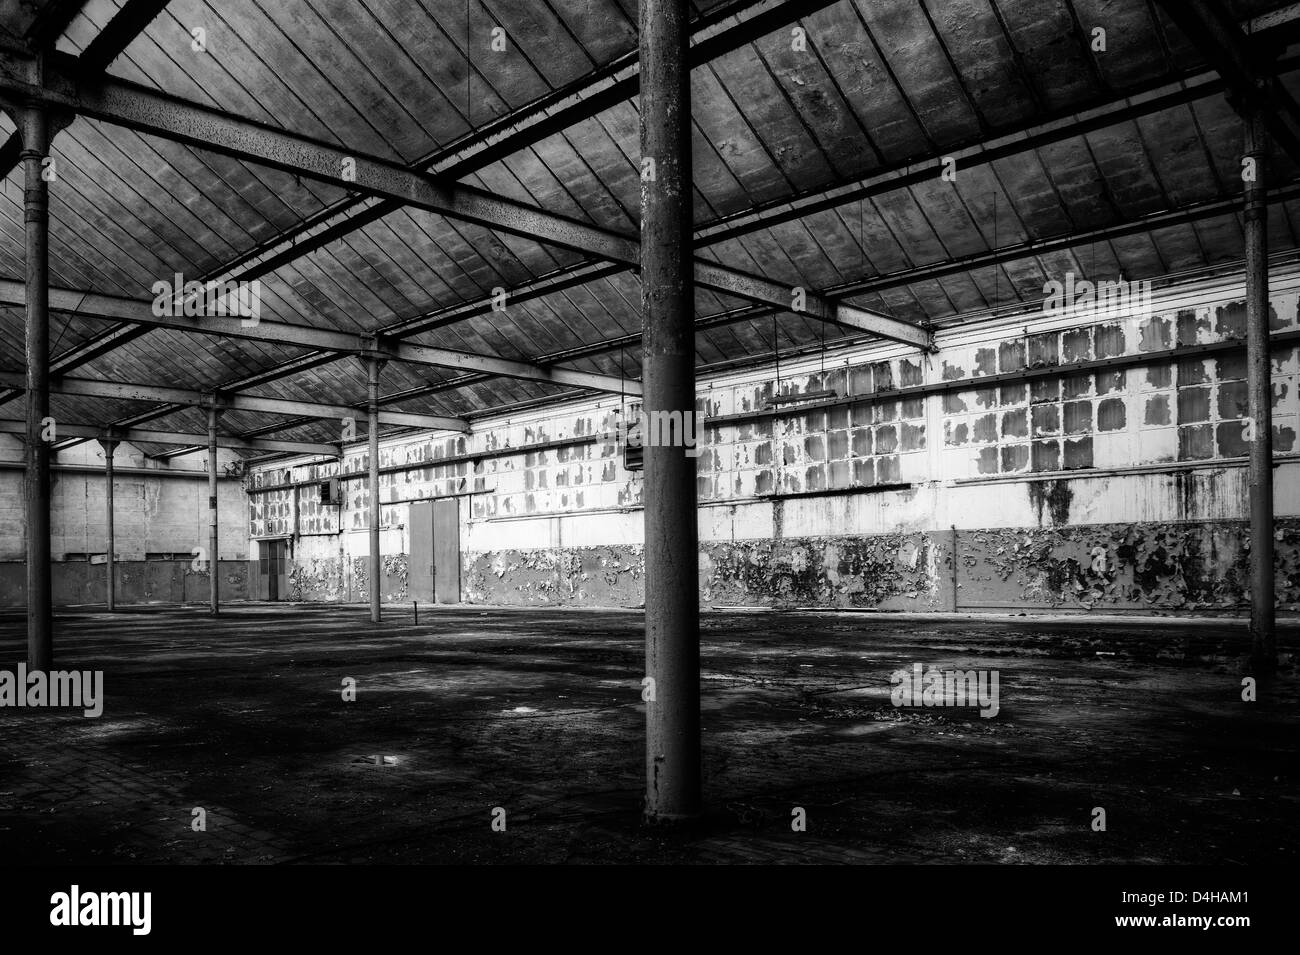 Italy. Abandoned factory warehouse - Stock Image